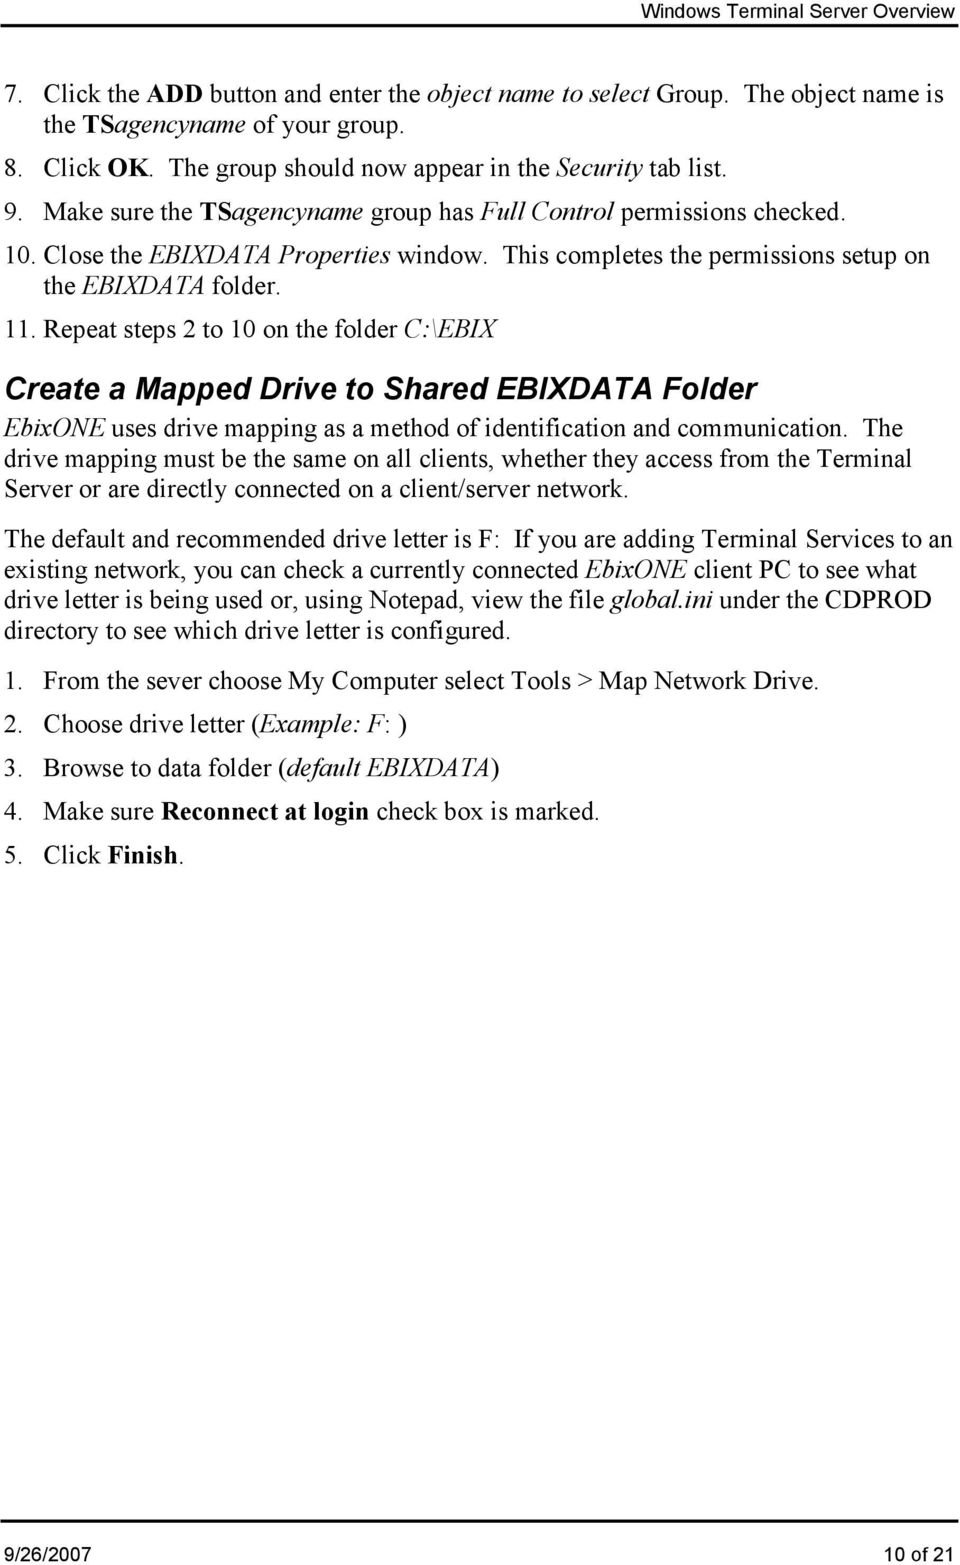 Repeat steps 2 to 10 on the folder C:\EBIX Create a Mapped Drive to Shared EBIXDATA Folder EbixONE uses drive mapping as a method of identification and communication.